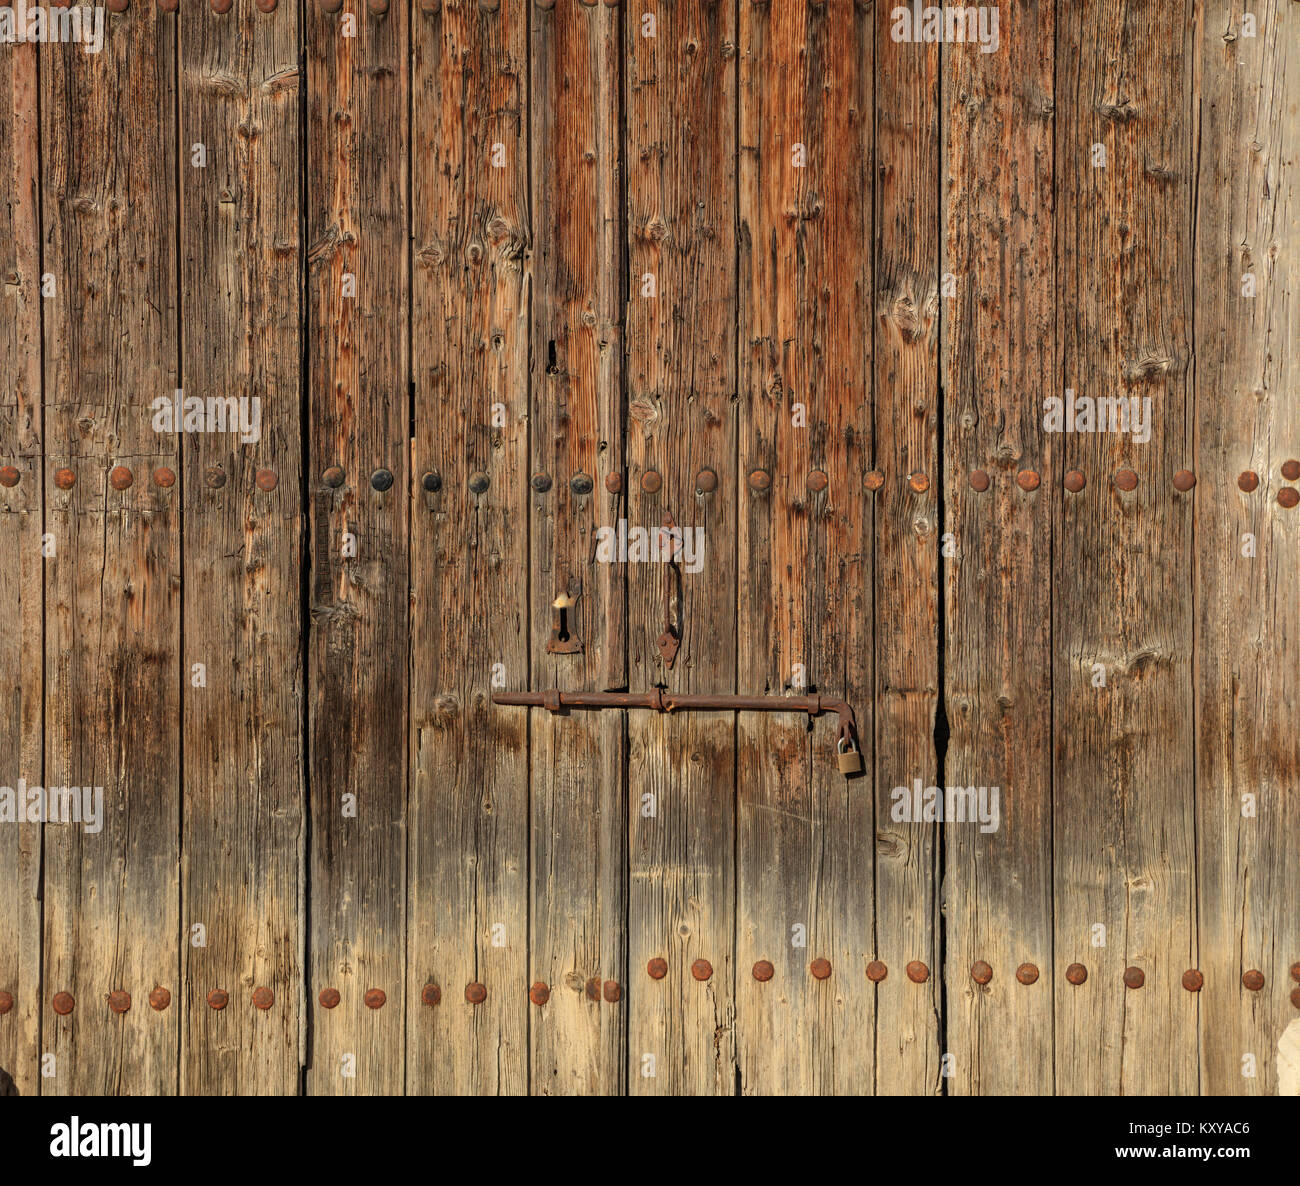 Wooden brown door. Timeworn background with rusty latch and padlock. Close up view with details. - Stock Image